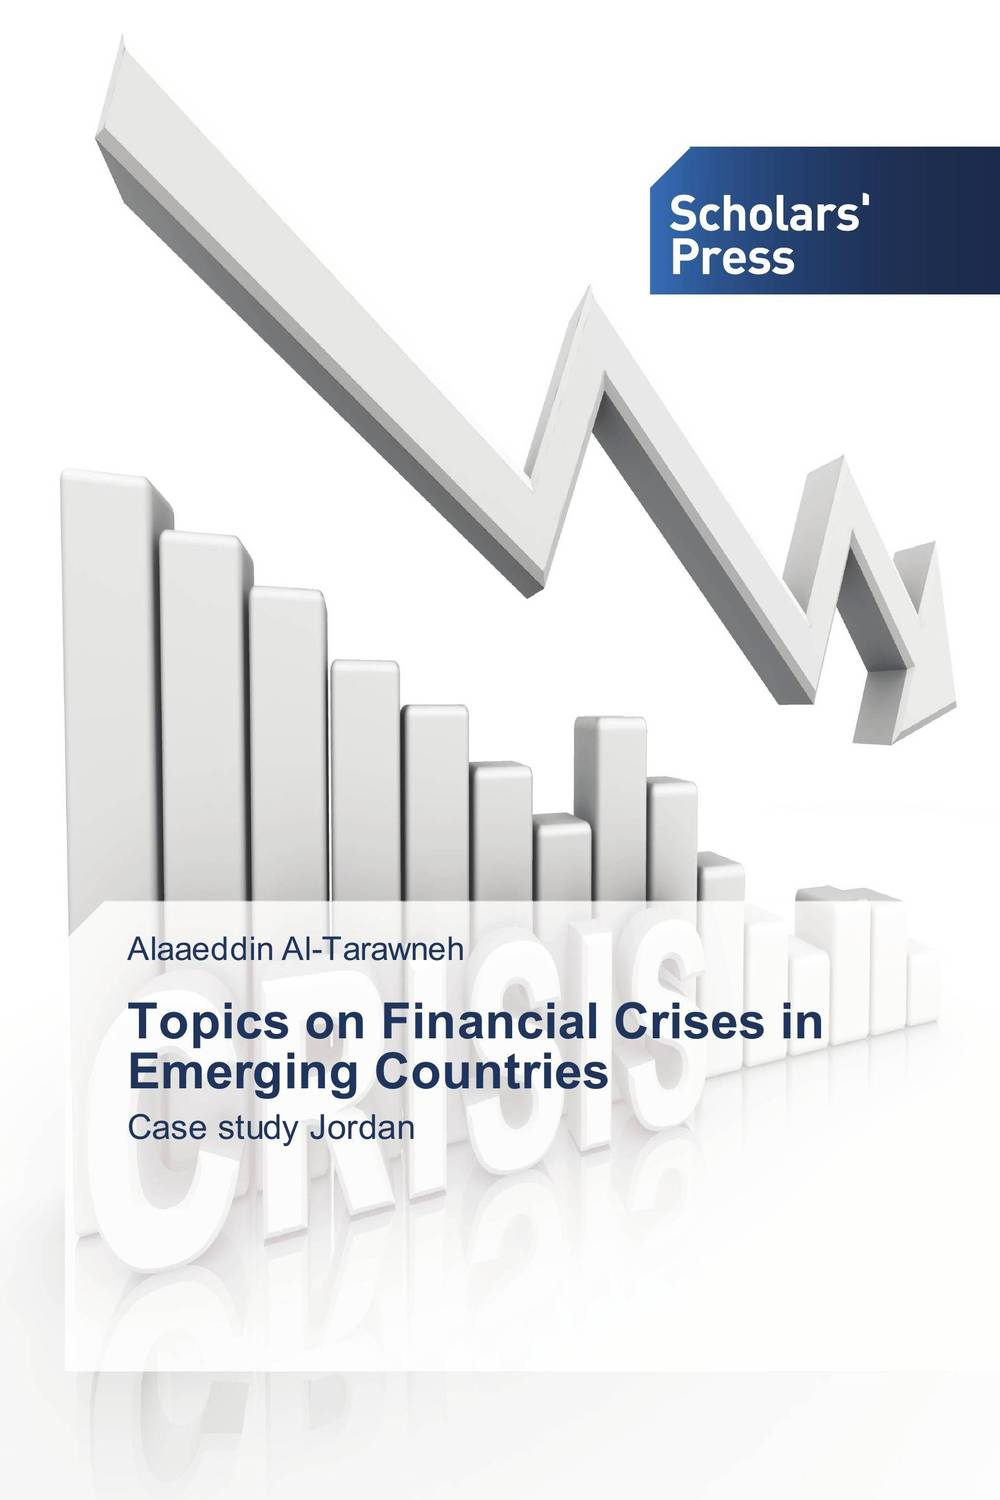 Topics on Financial Crises in Emerging Countries